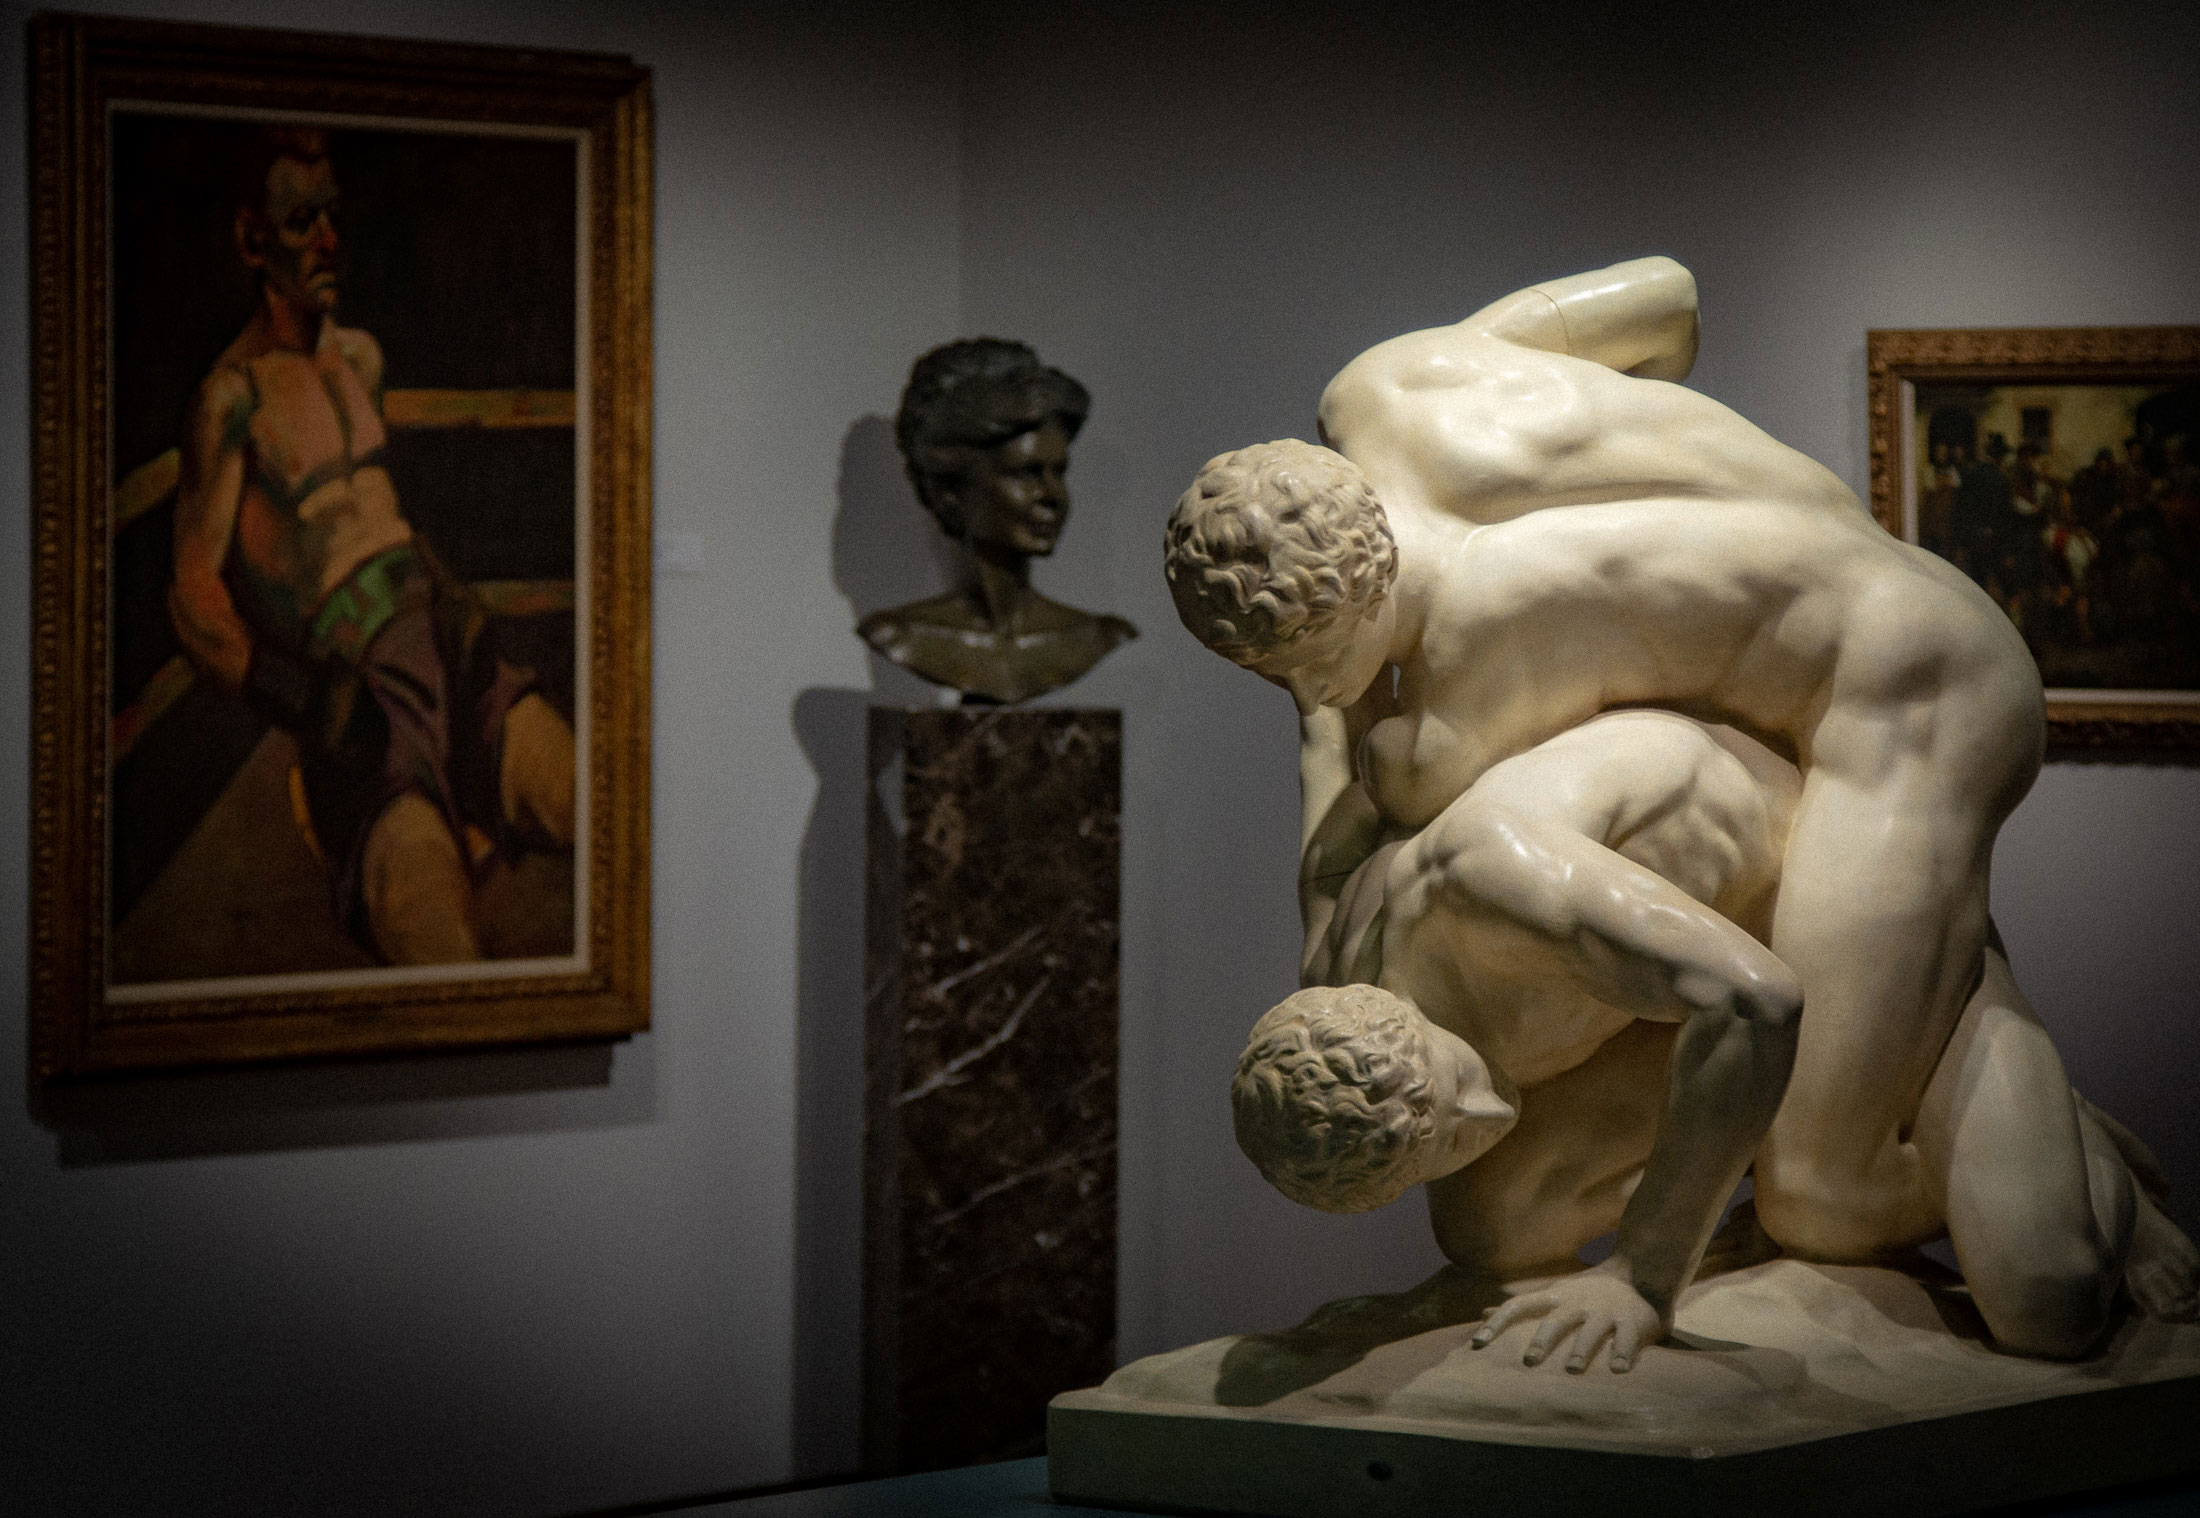 Front view of The Battle Cast the Wrestlers statue, on loan from the Blanton Museum of Art, located in the Teresa Lozano Long Art Gallery; a bust of Betty Weider, from the Weider Art Collection, is in the background.